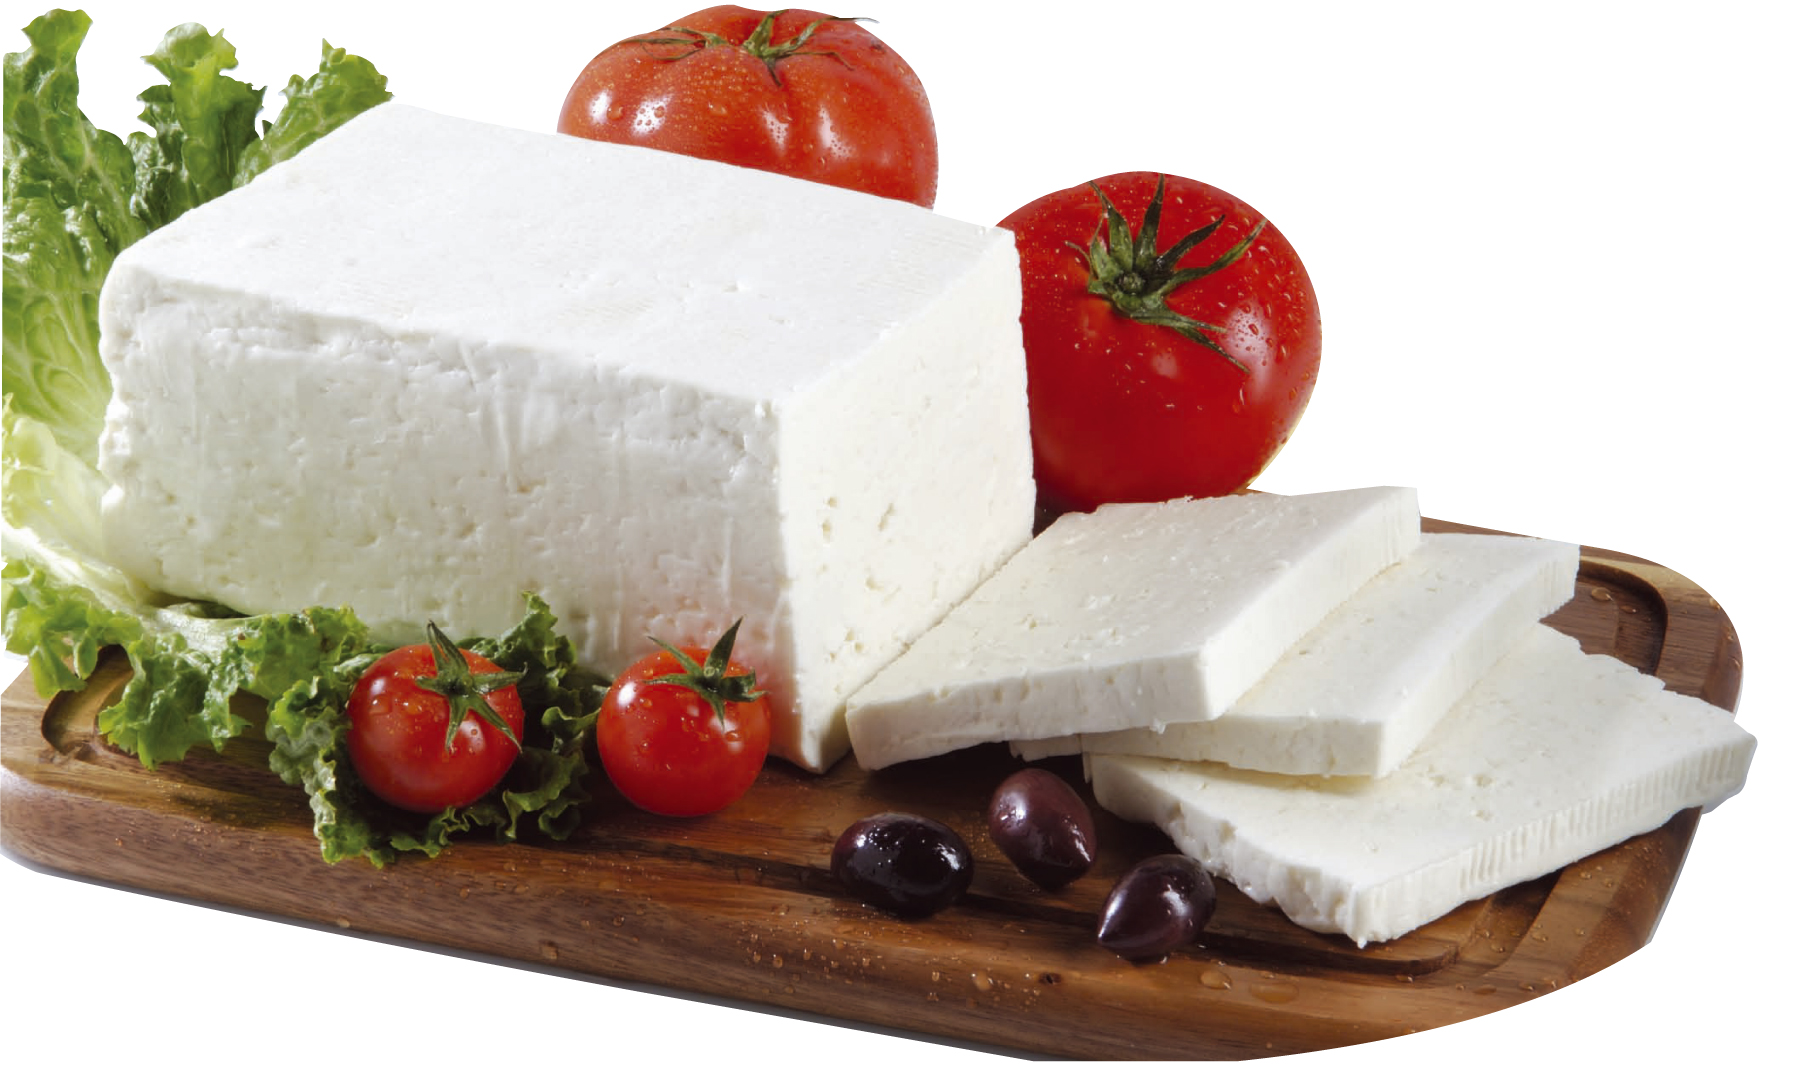 feta cheese images greek feta white cheese 7321